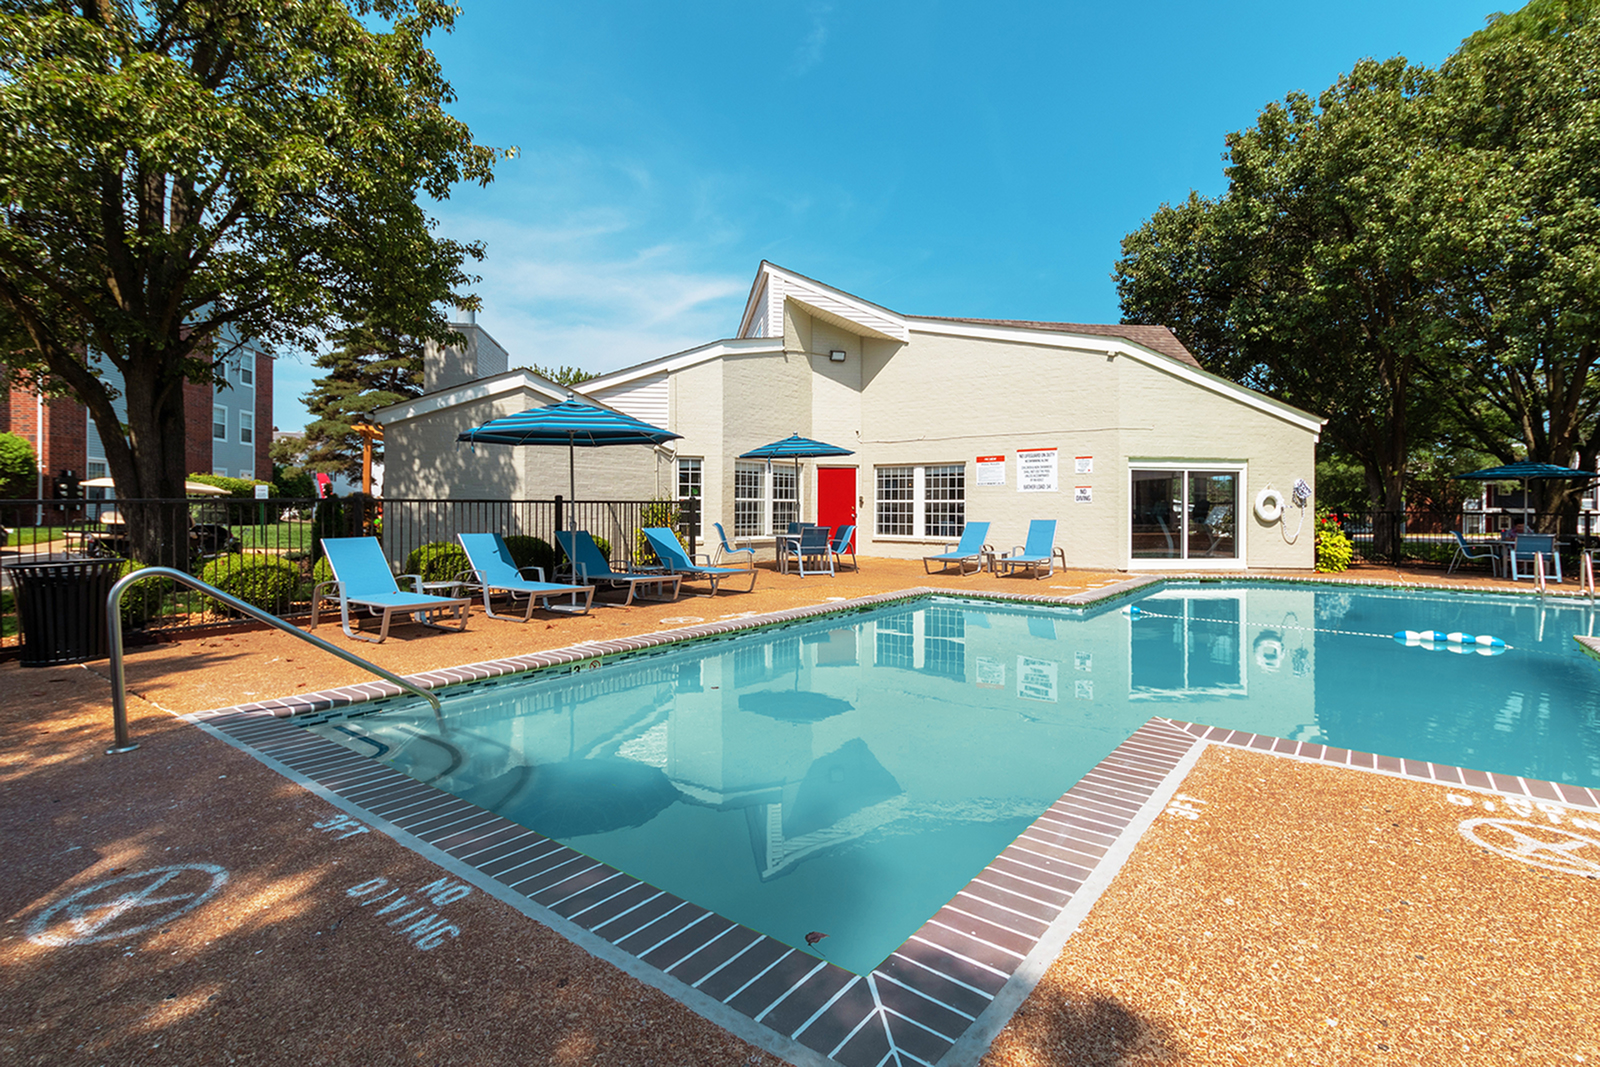 Image of Pristine Pool with Cabanas for ReNew Chesterfield